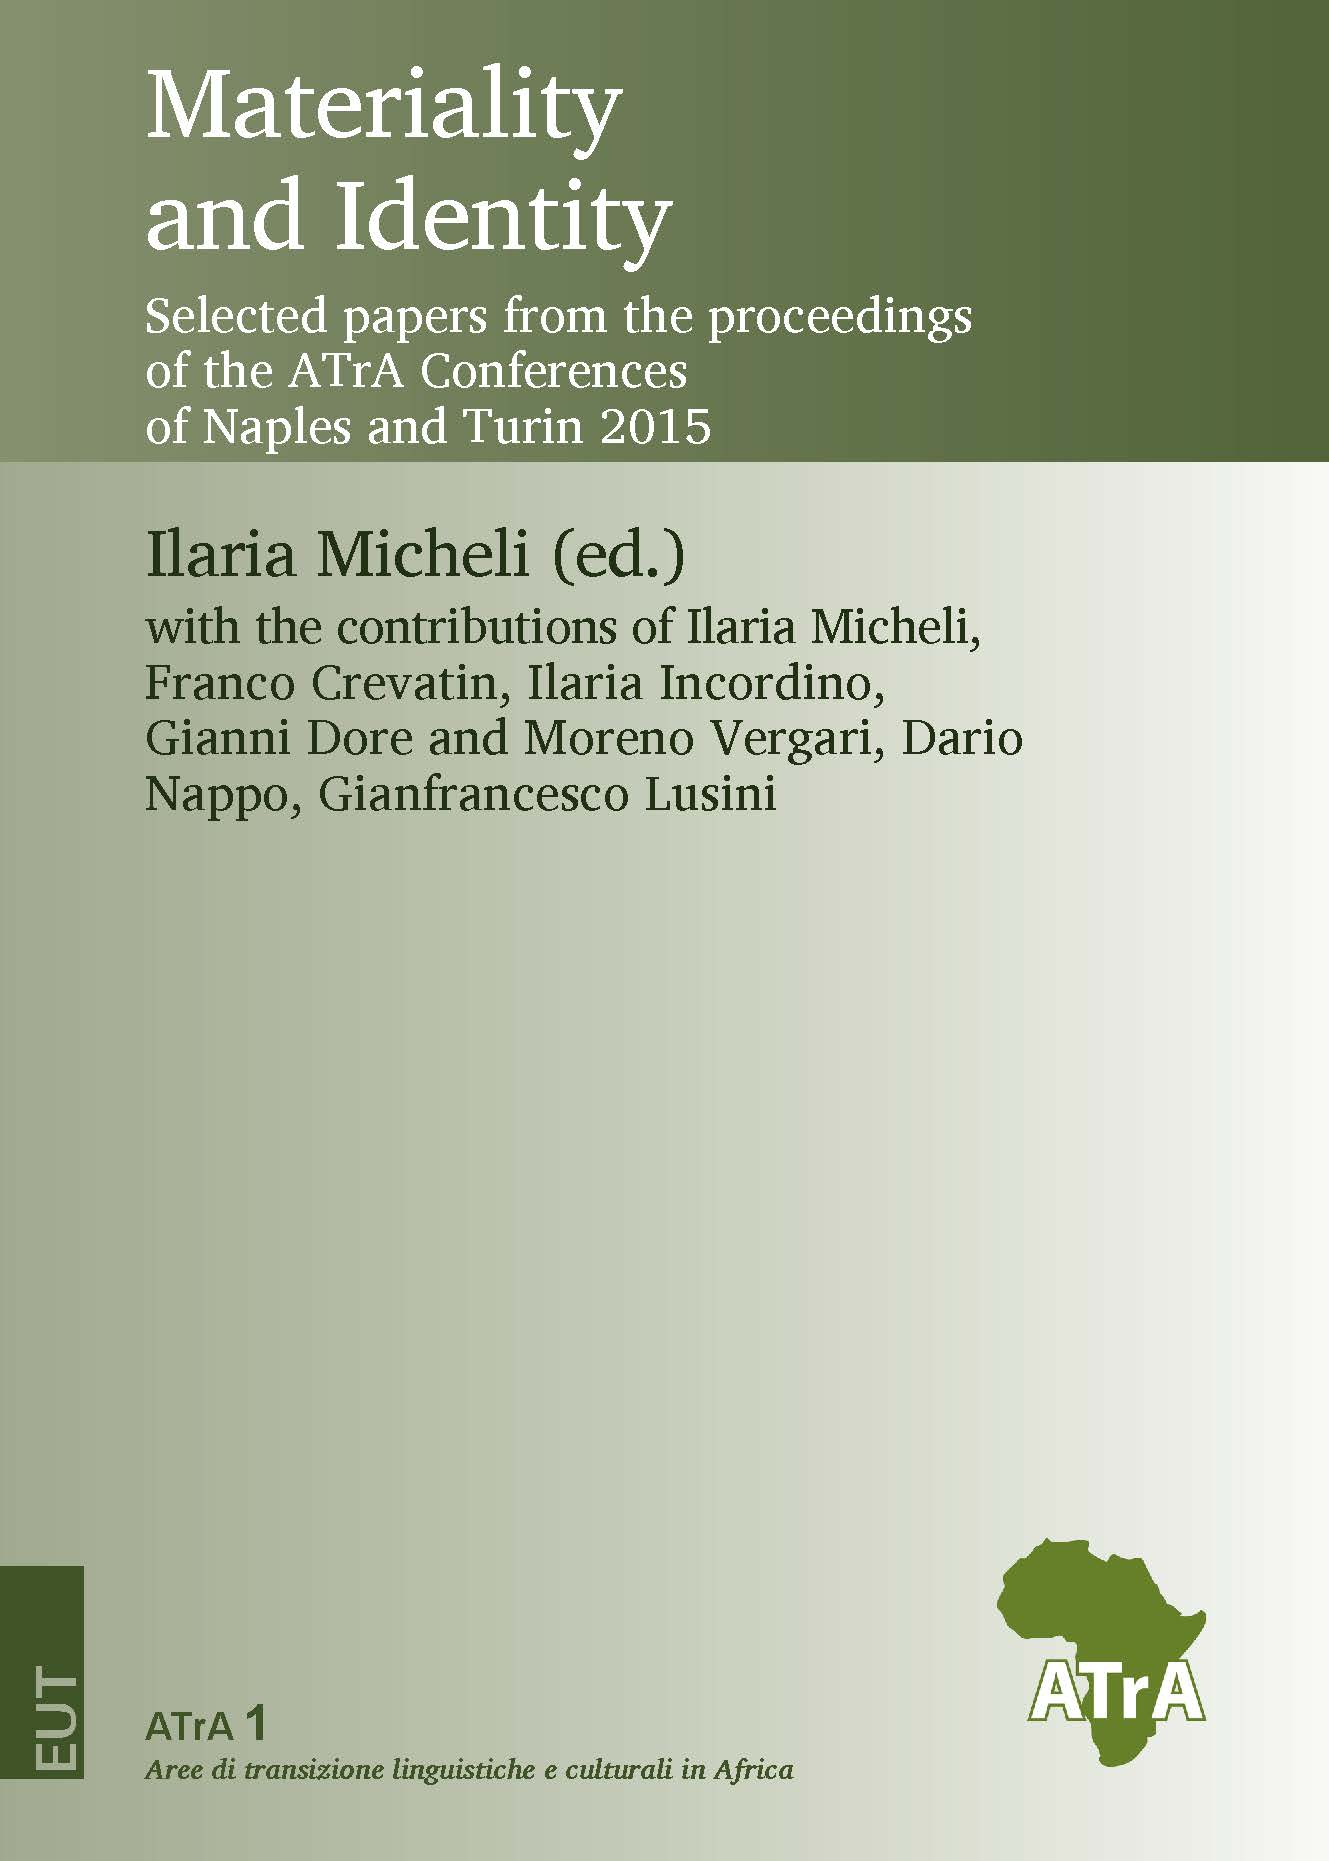 Materiality and Identity. Selected papers from the proceedings of the ATrA Conferences of Naples and Turin 2015